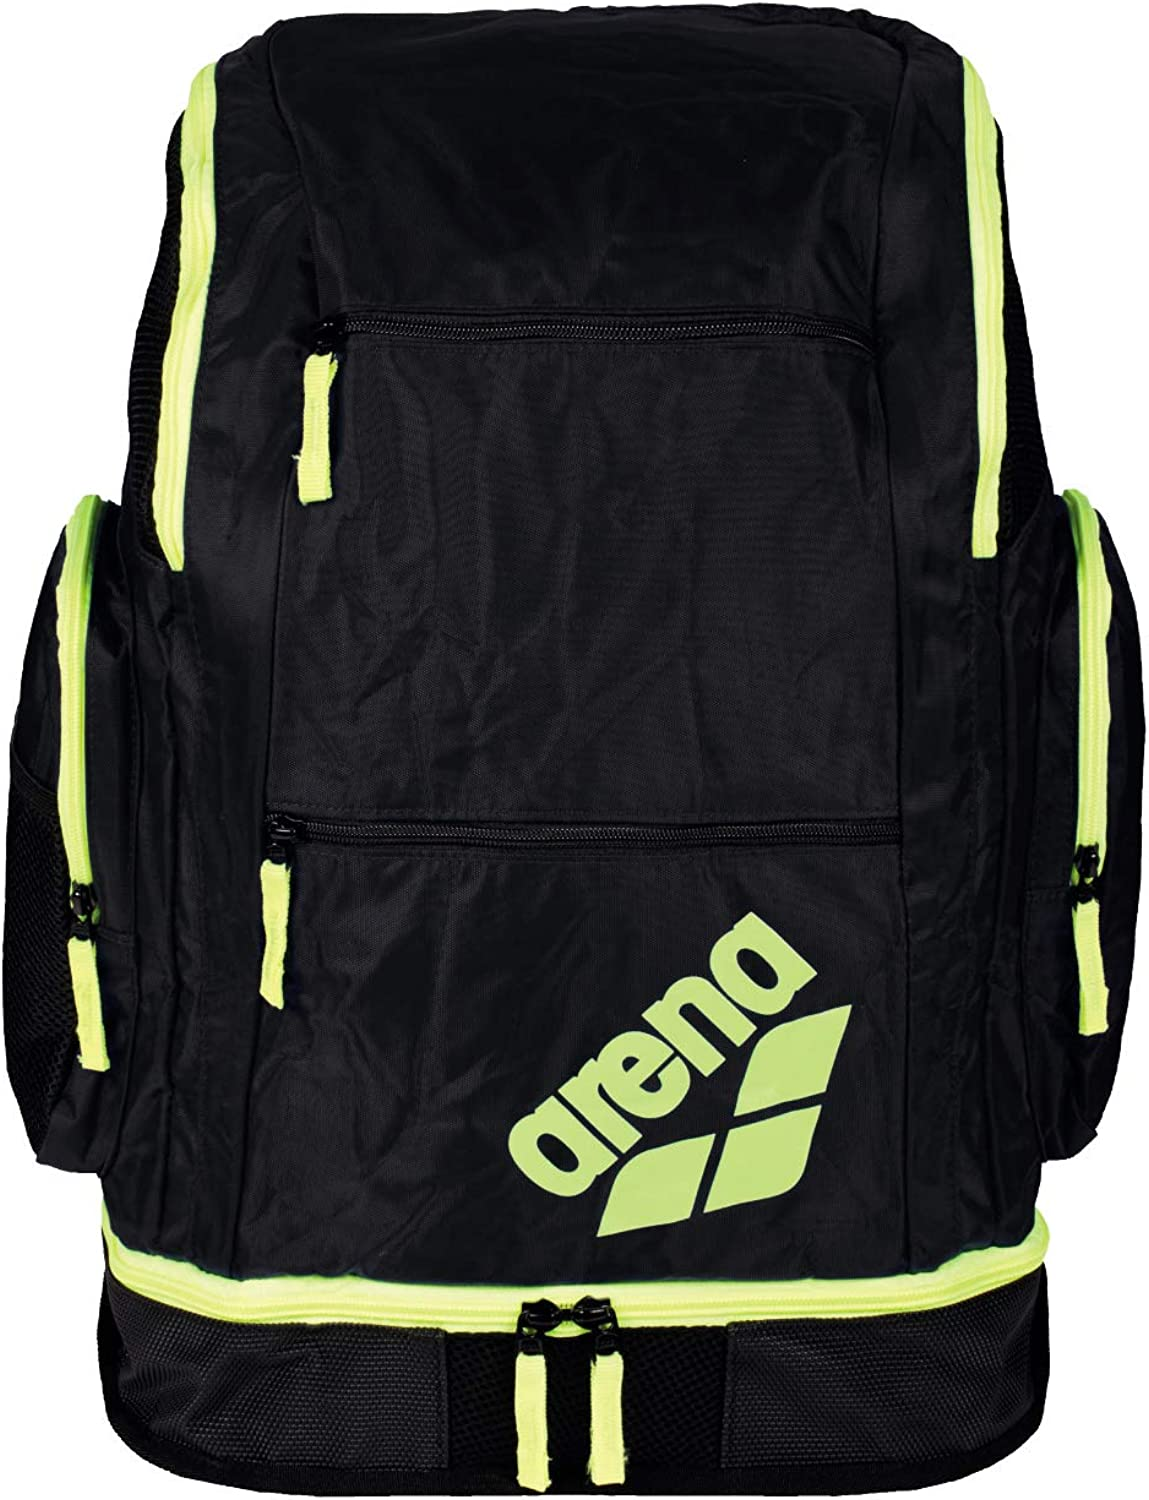 Arena Spiky 2 Adults' Functional Backpack